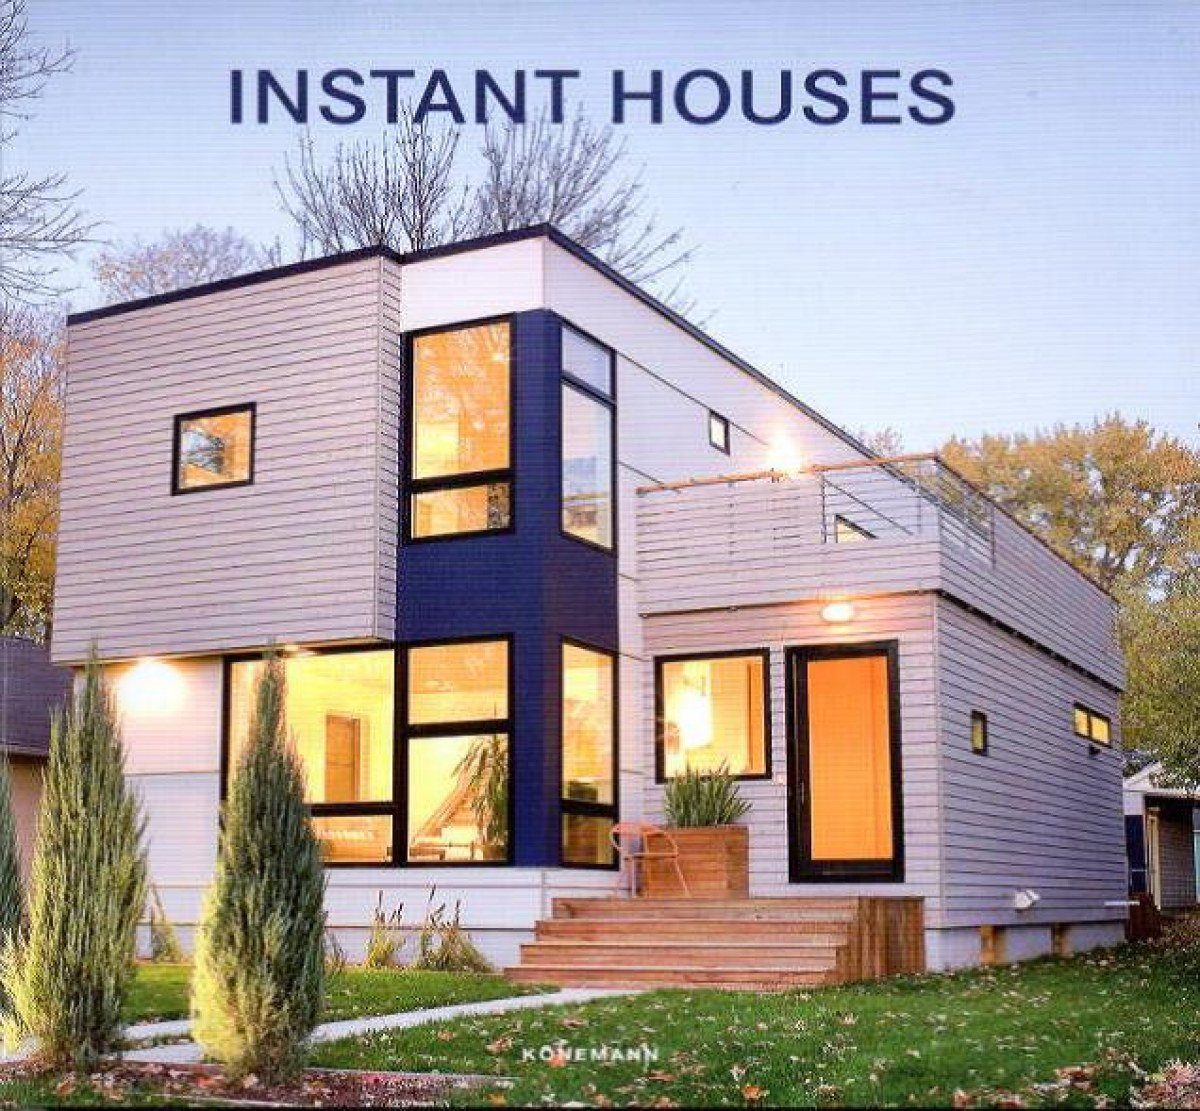 INSTANT HOUSES 9783741921155